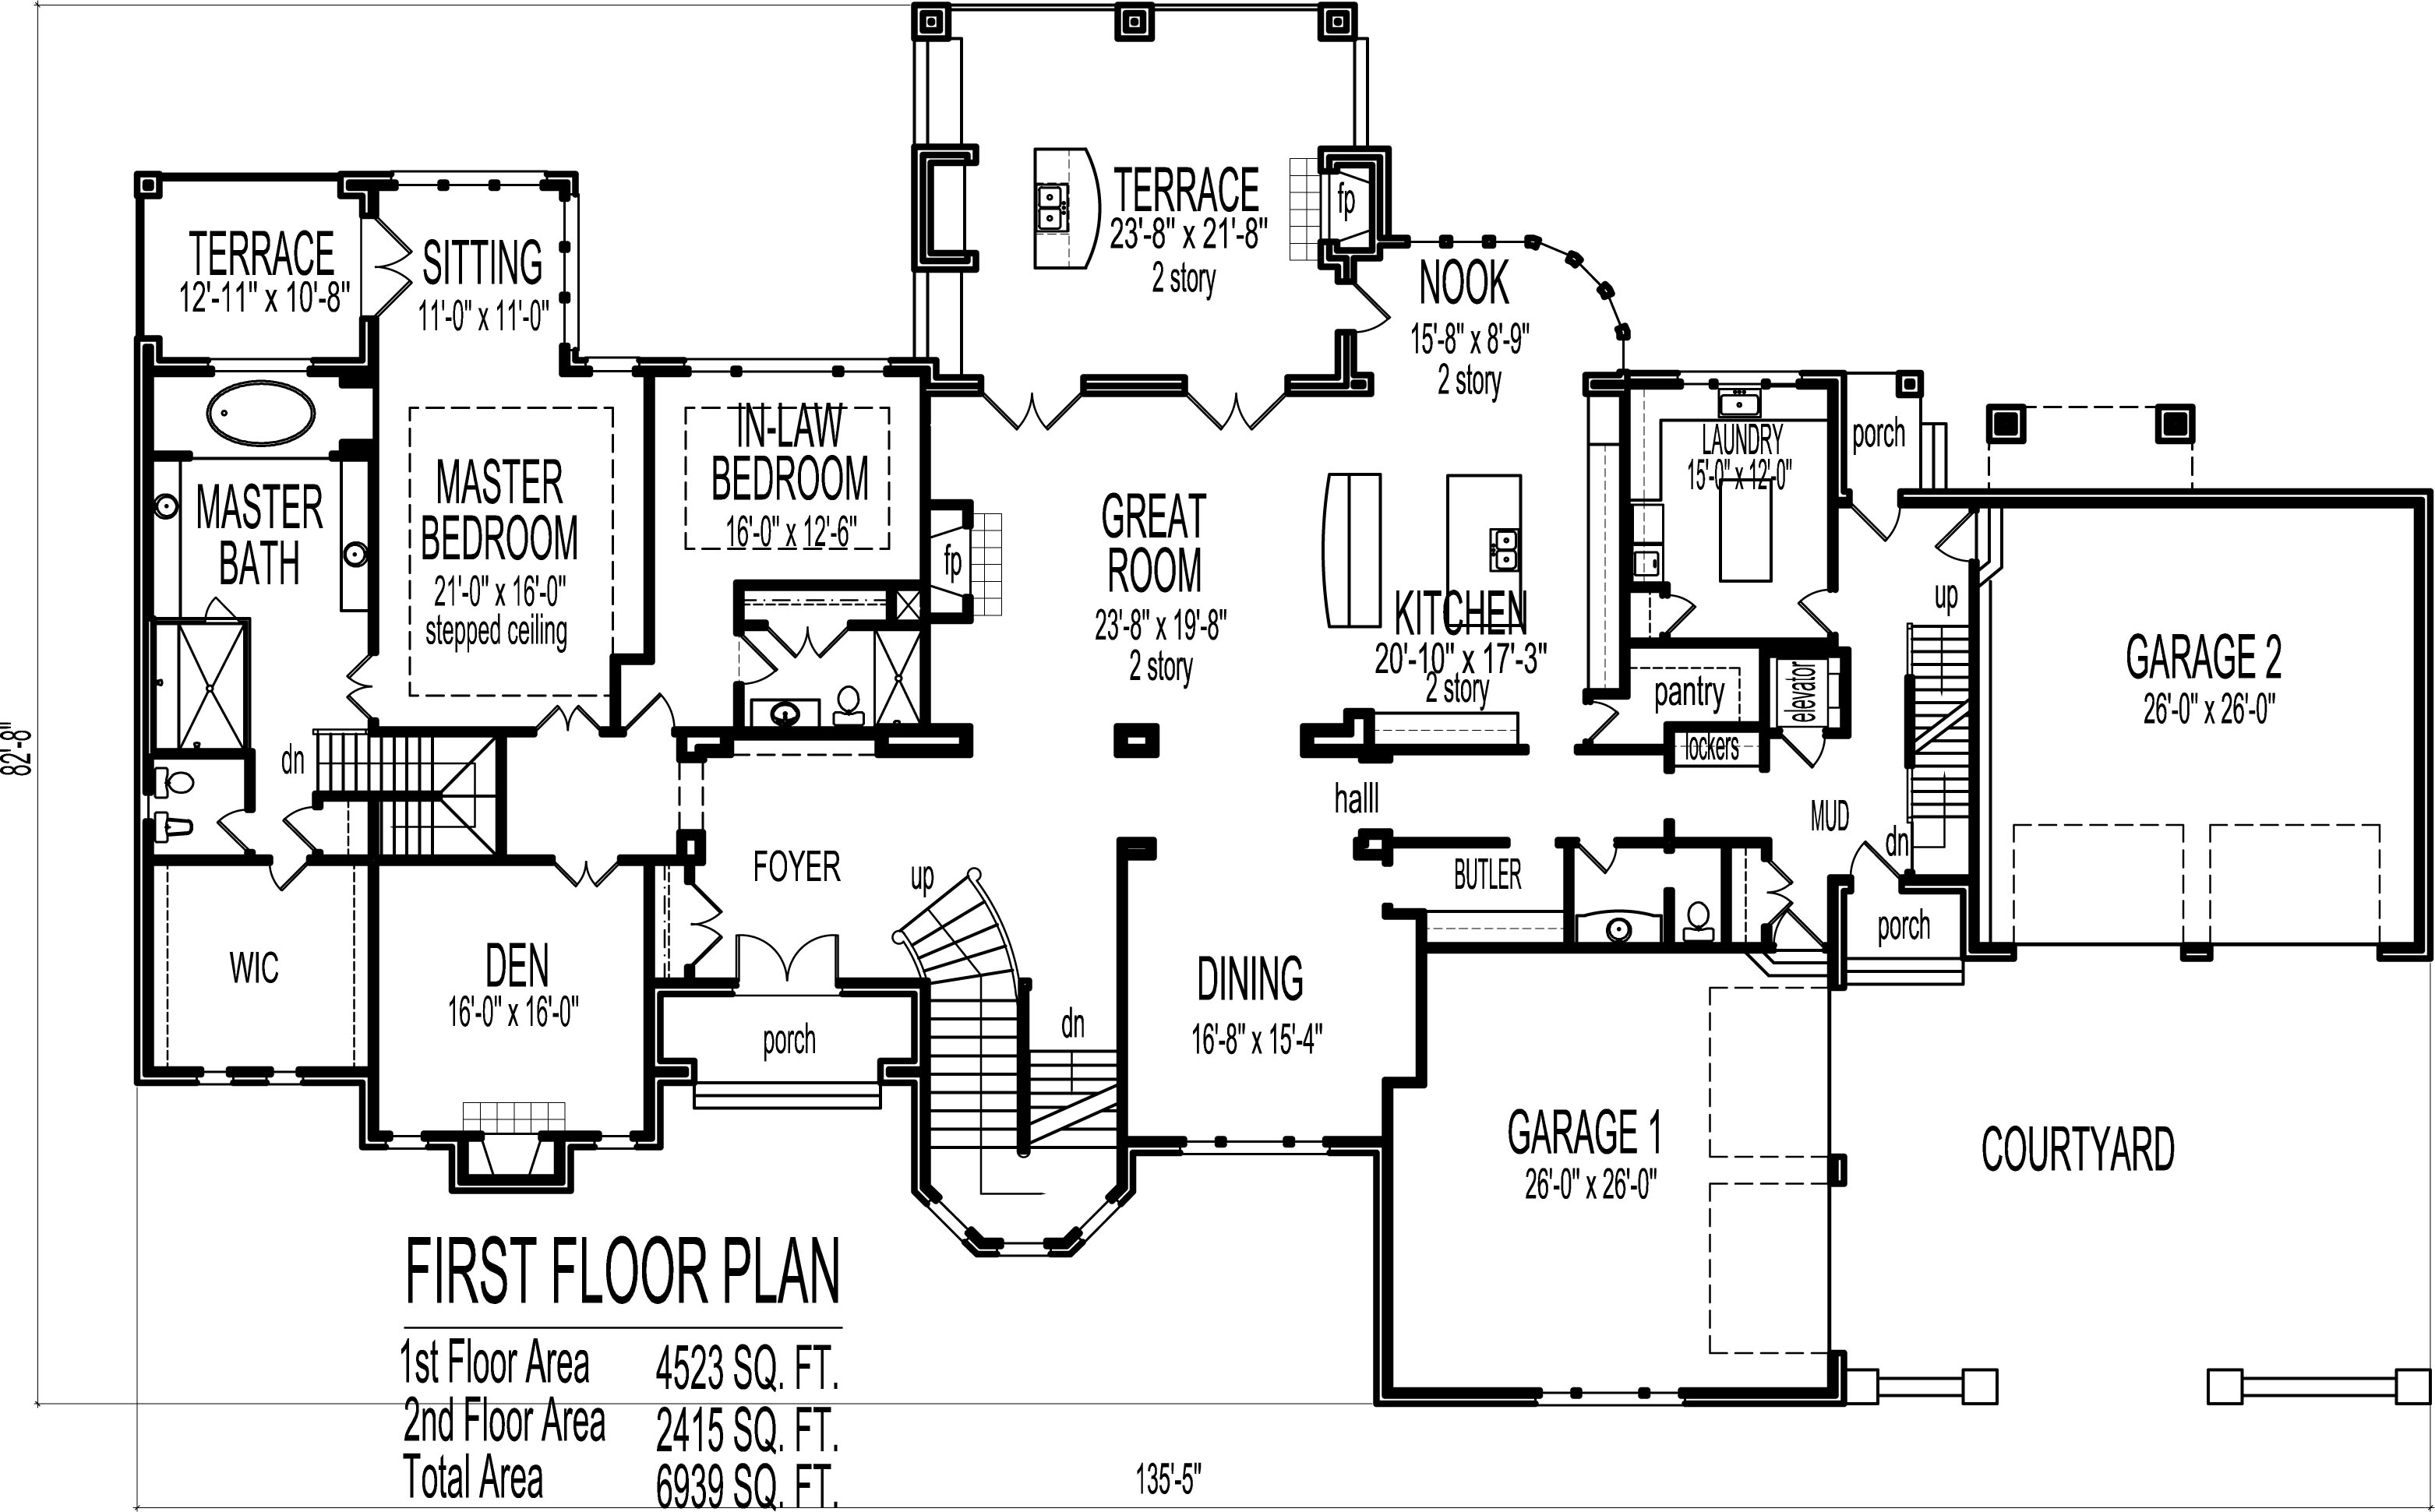 dream house floor plans blueprints 2 story 5 bedroom large home designs. Black Bedroom Furniture Sets. Home Design Ideas